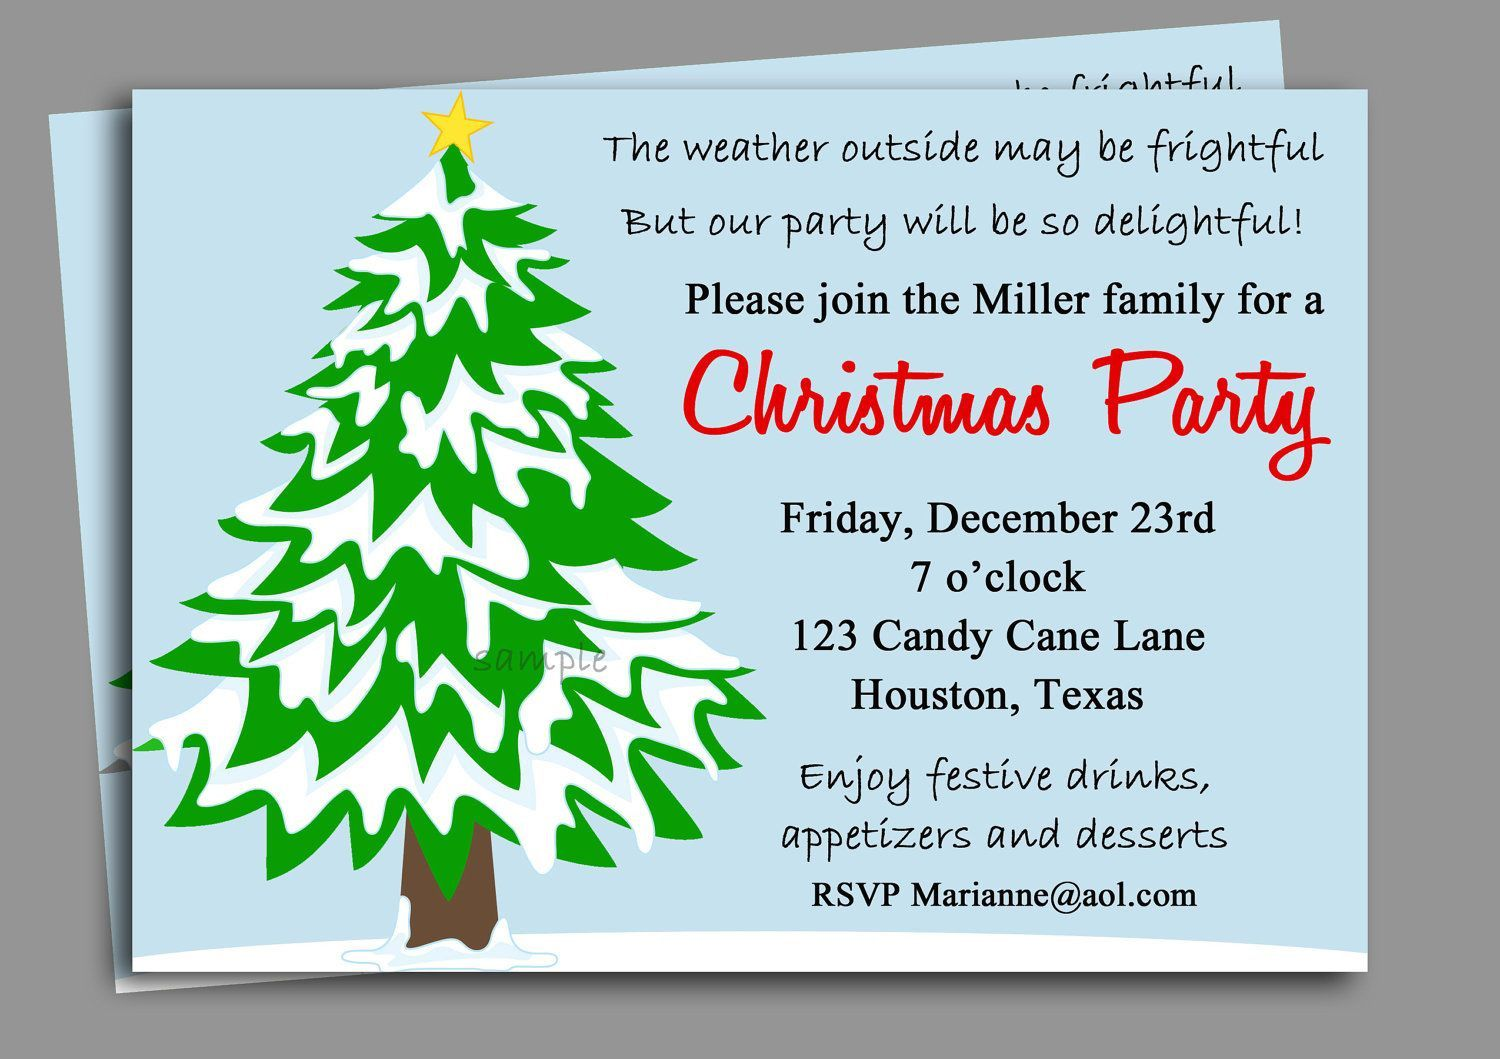 008 Striking Office Christma Party Invitation Wording Sample Highest Quality  Holiday ExampleFull